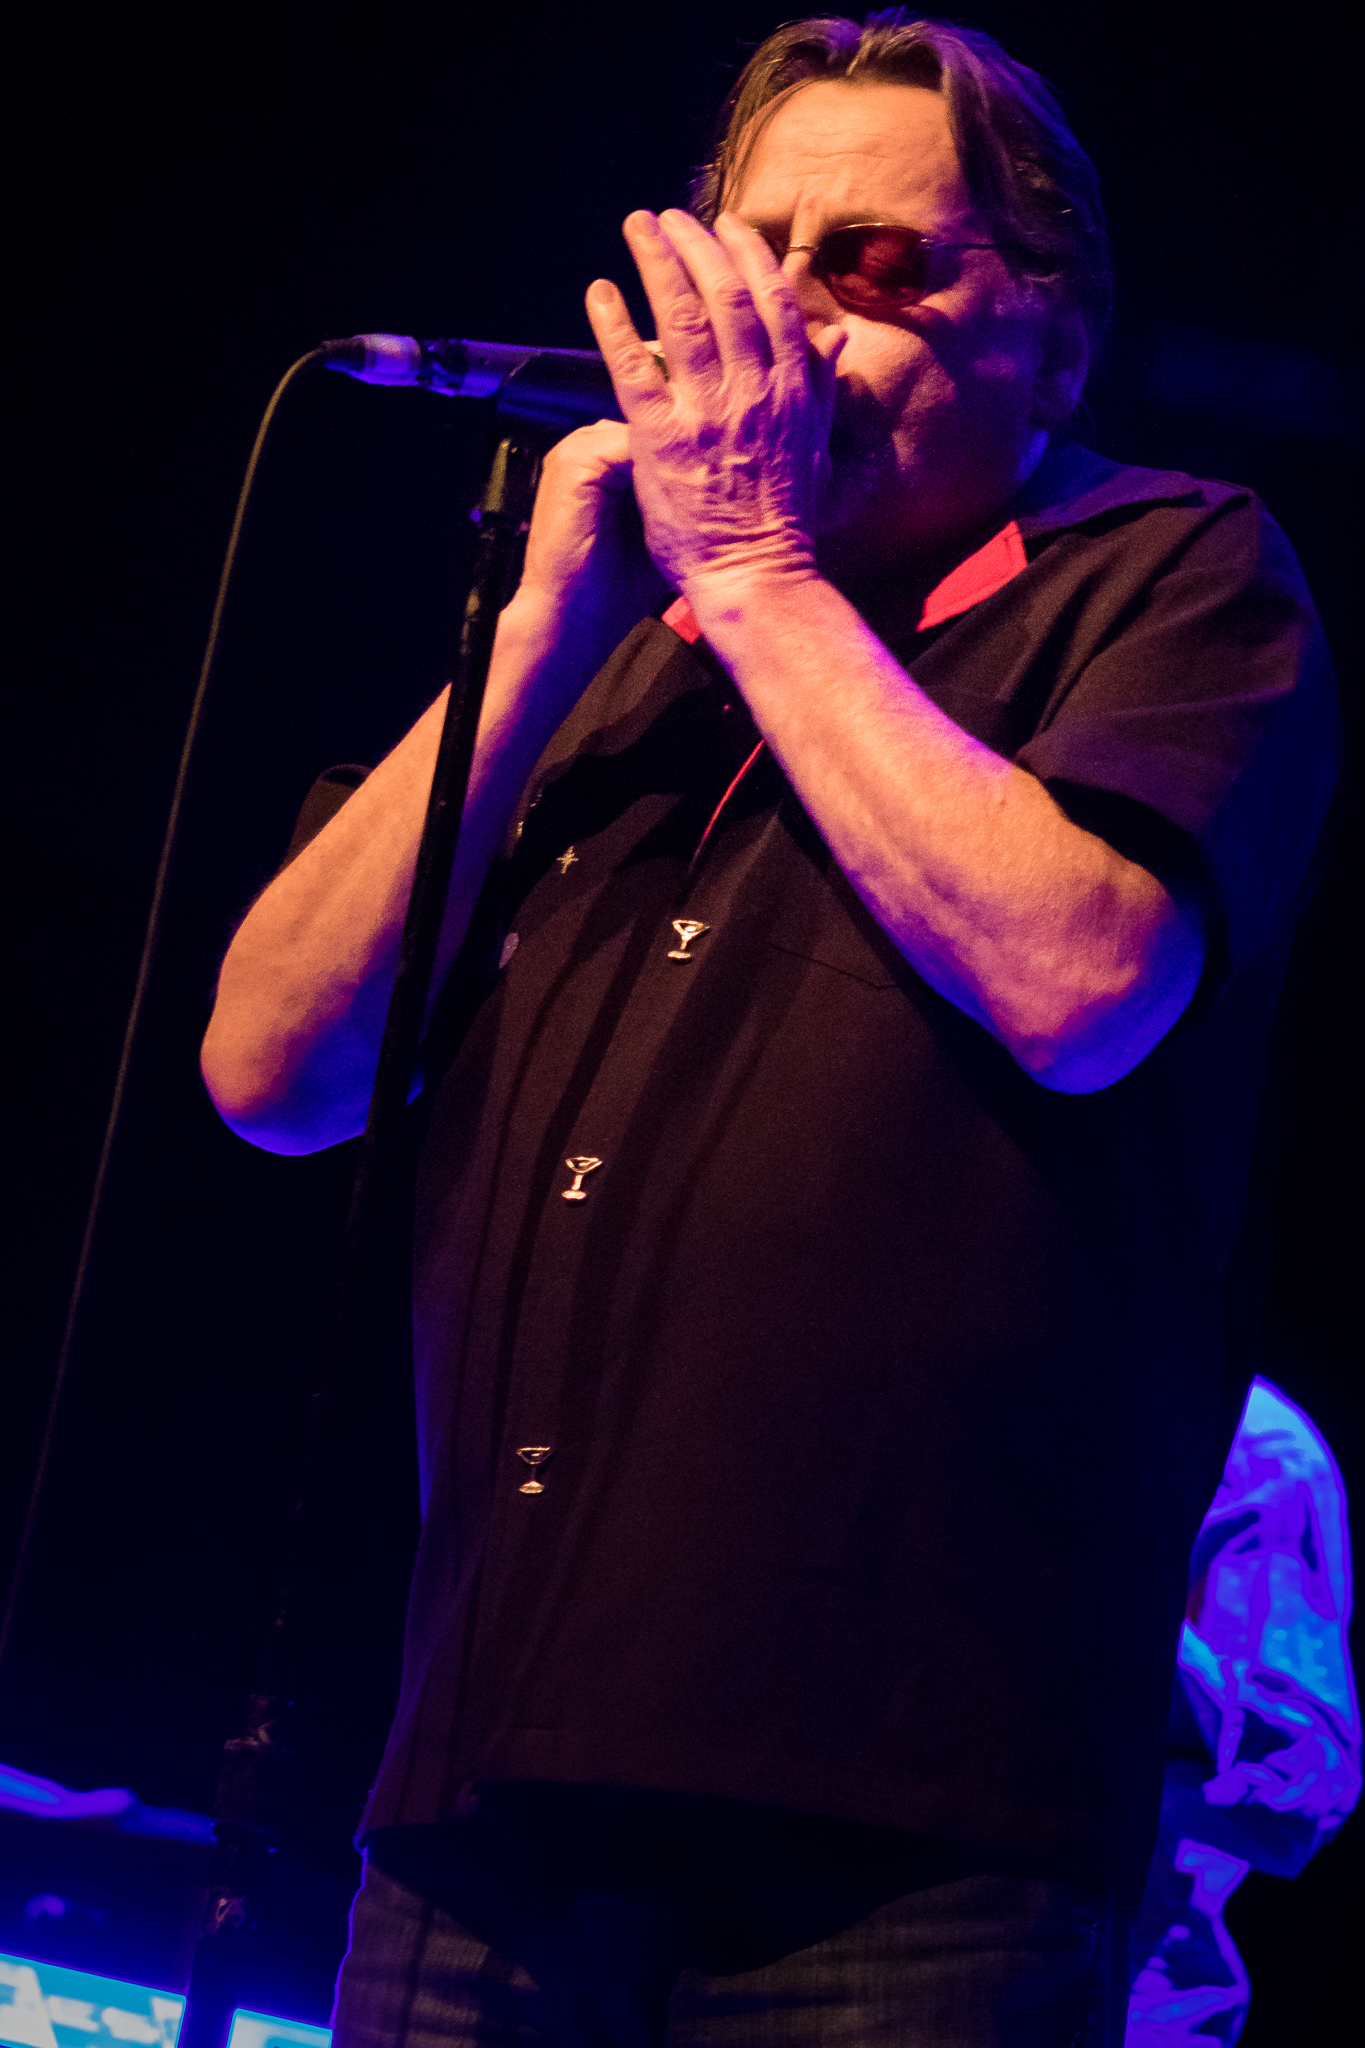 Southside Johnny & the Asbury Dukes